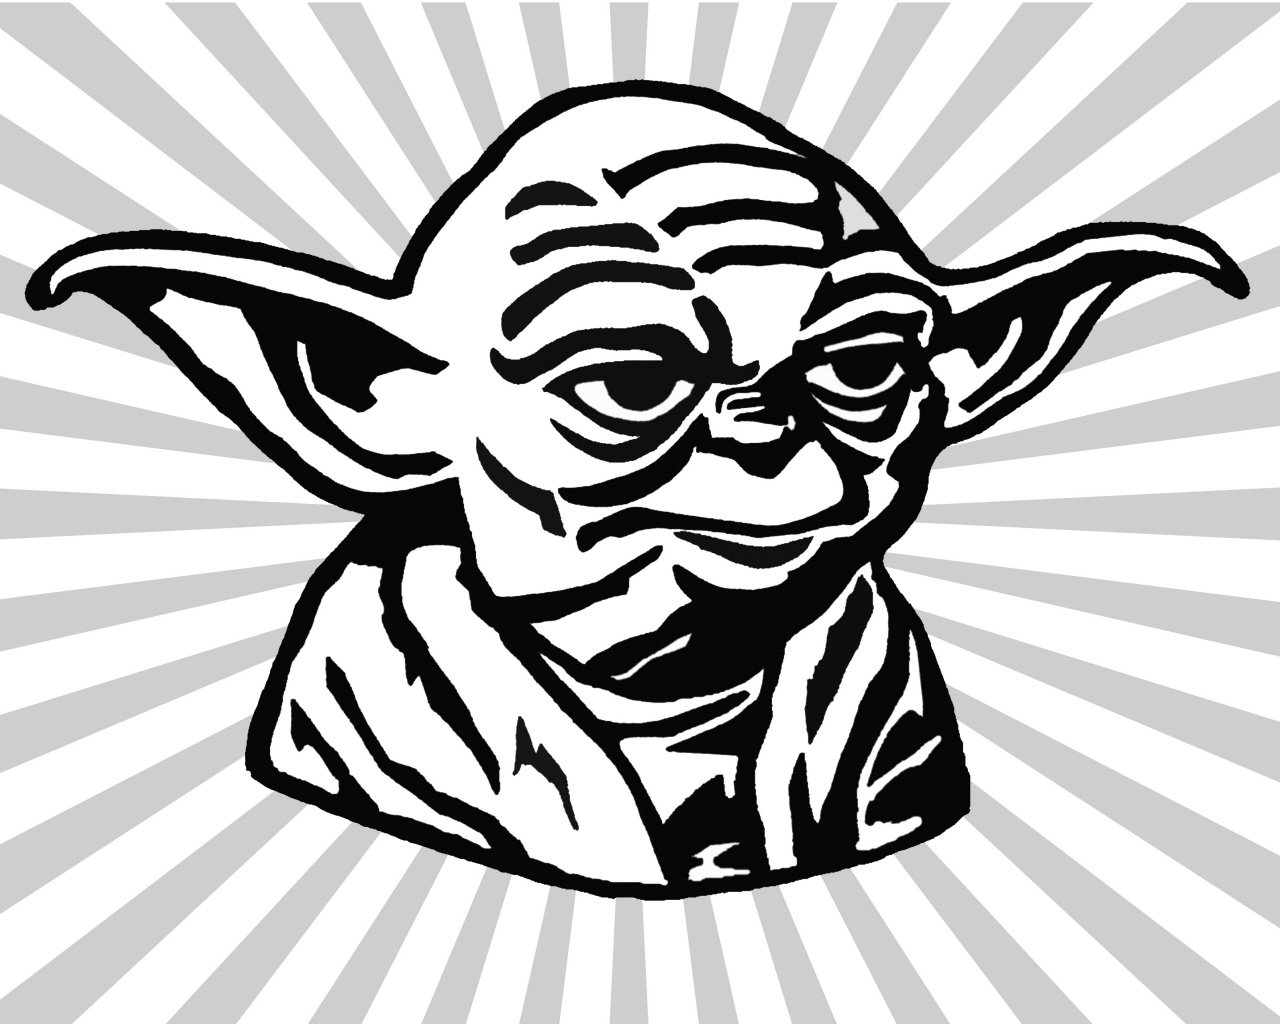 1280x1024 Star Wars Yoda Coloring Pages Download And Print For Free